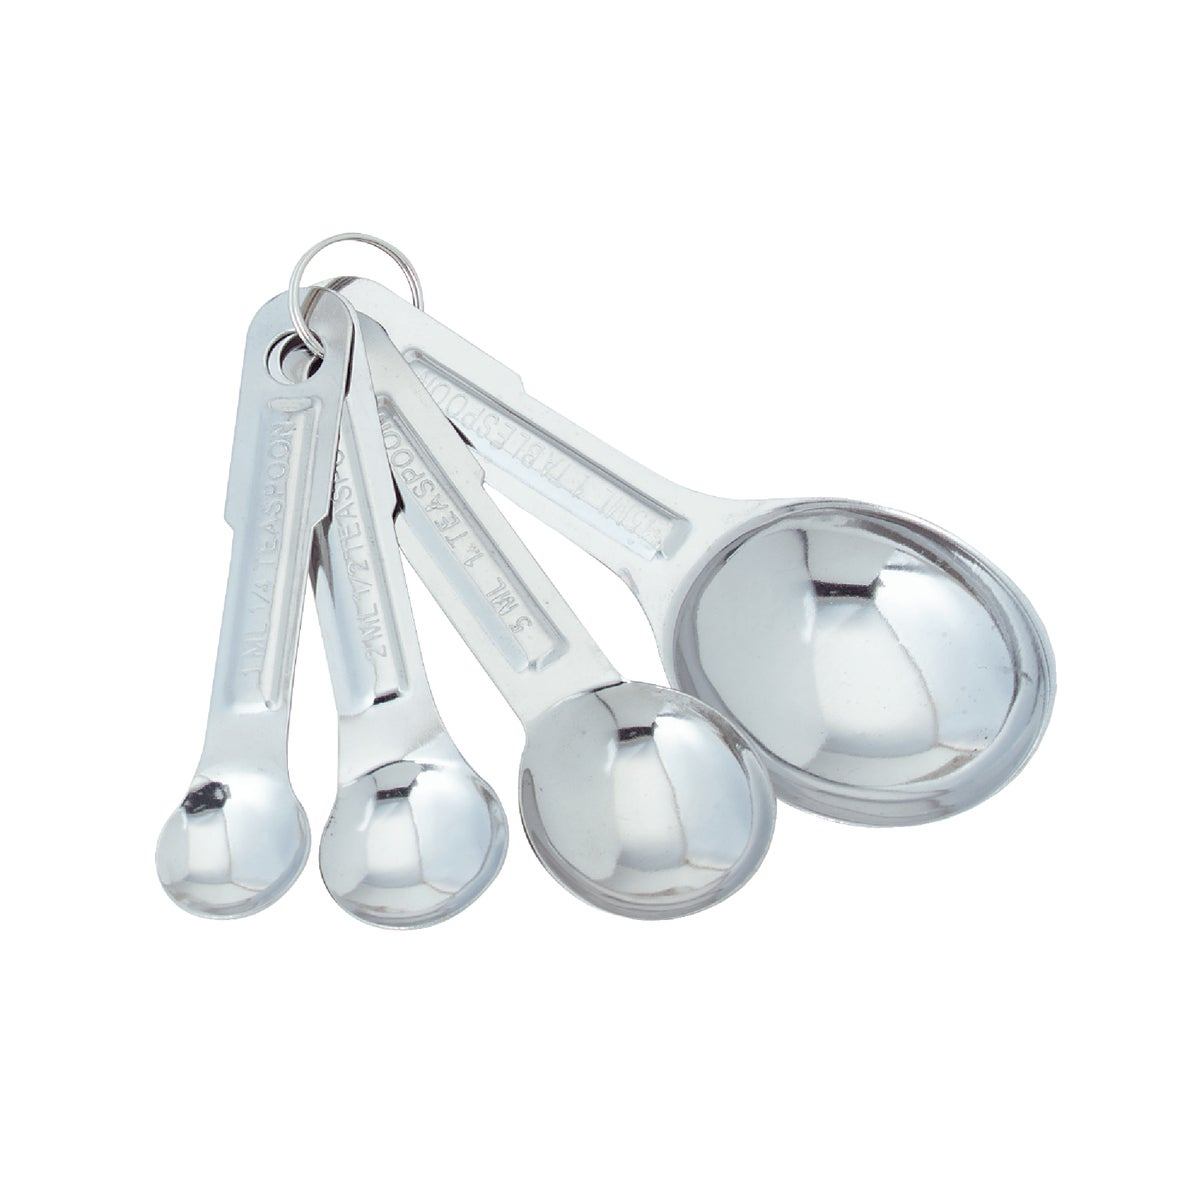 4PC SS MEASURING SPOONS - 3050 by Norpro